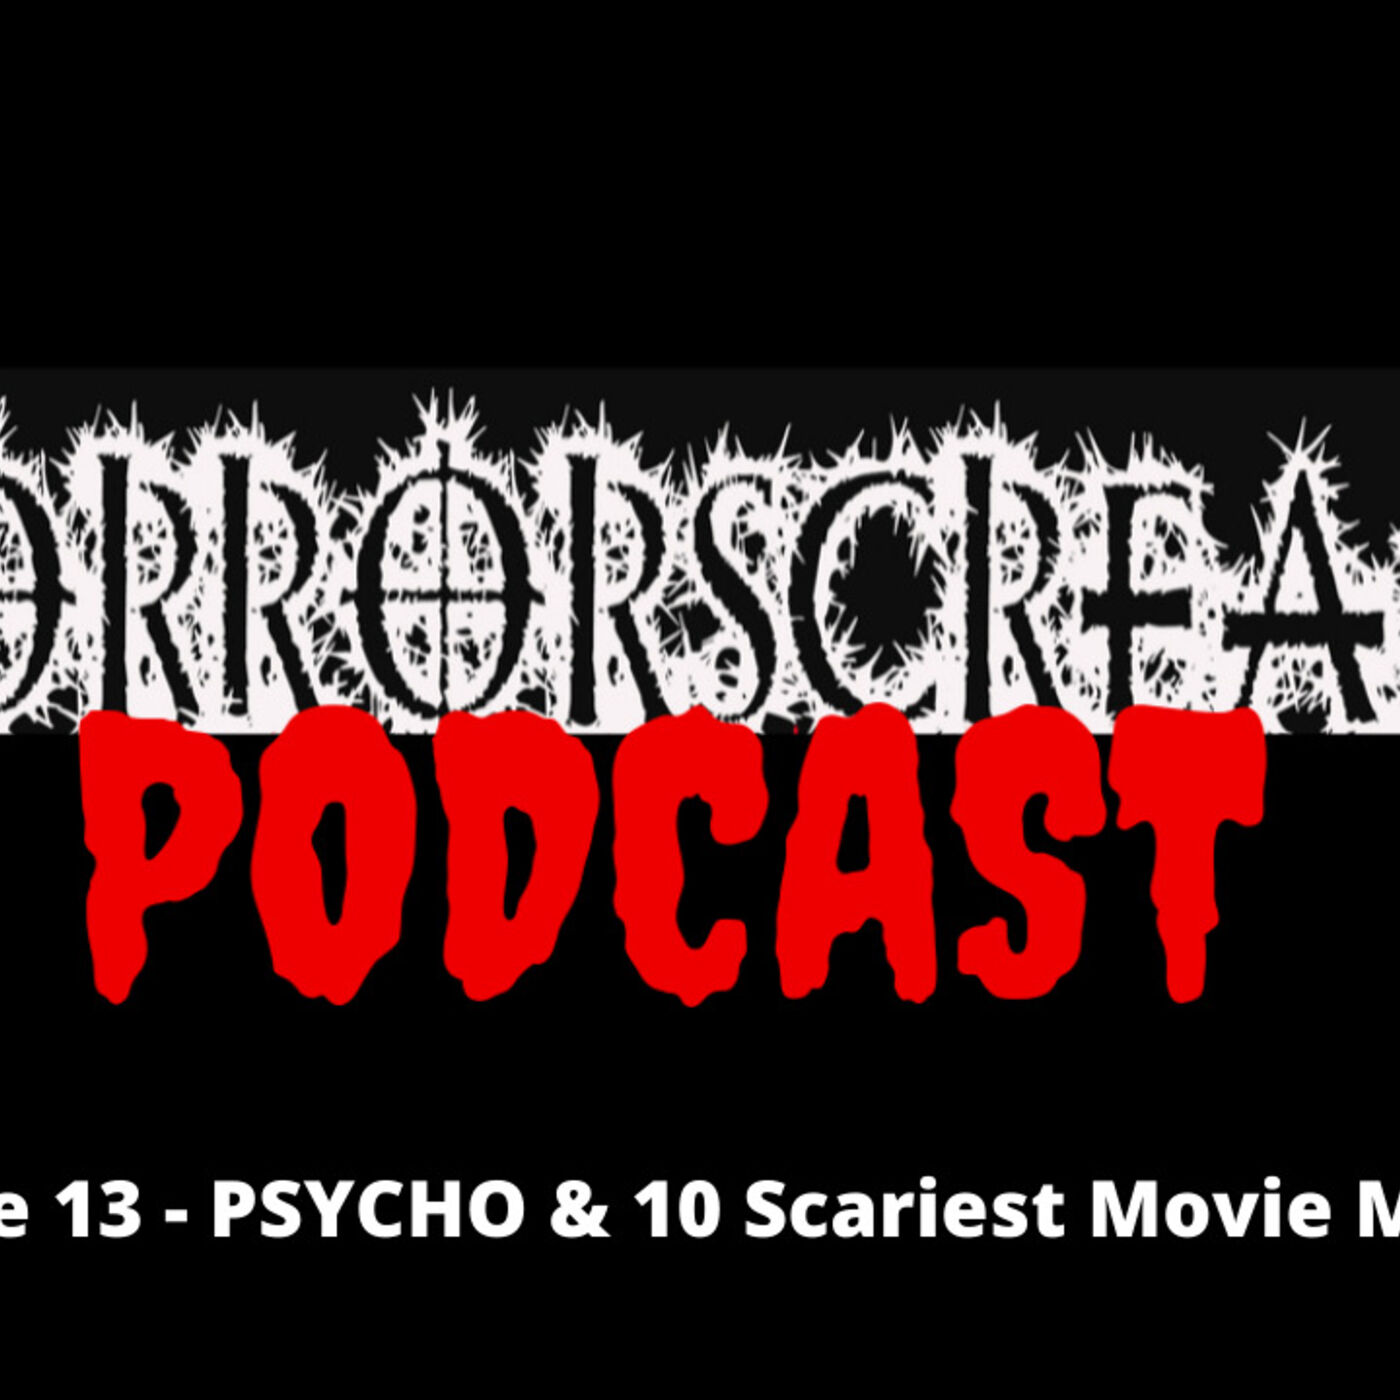 HORRORSCREAMS PODCAST: Episode 13 - PSYCHO & 10 Scariest Movie Moments.